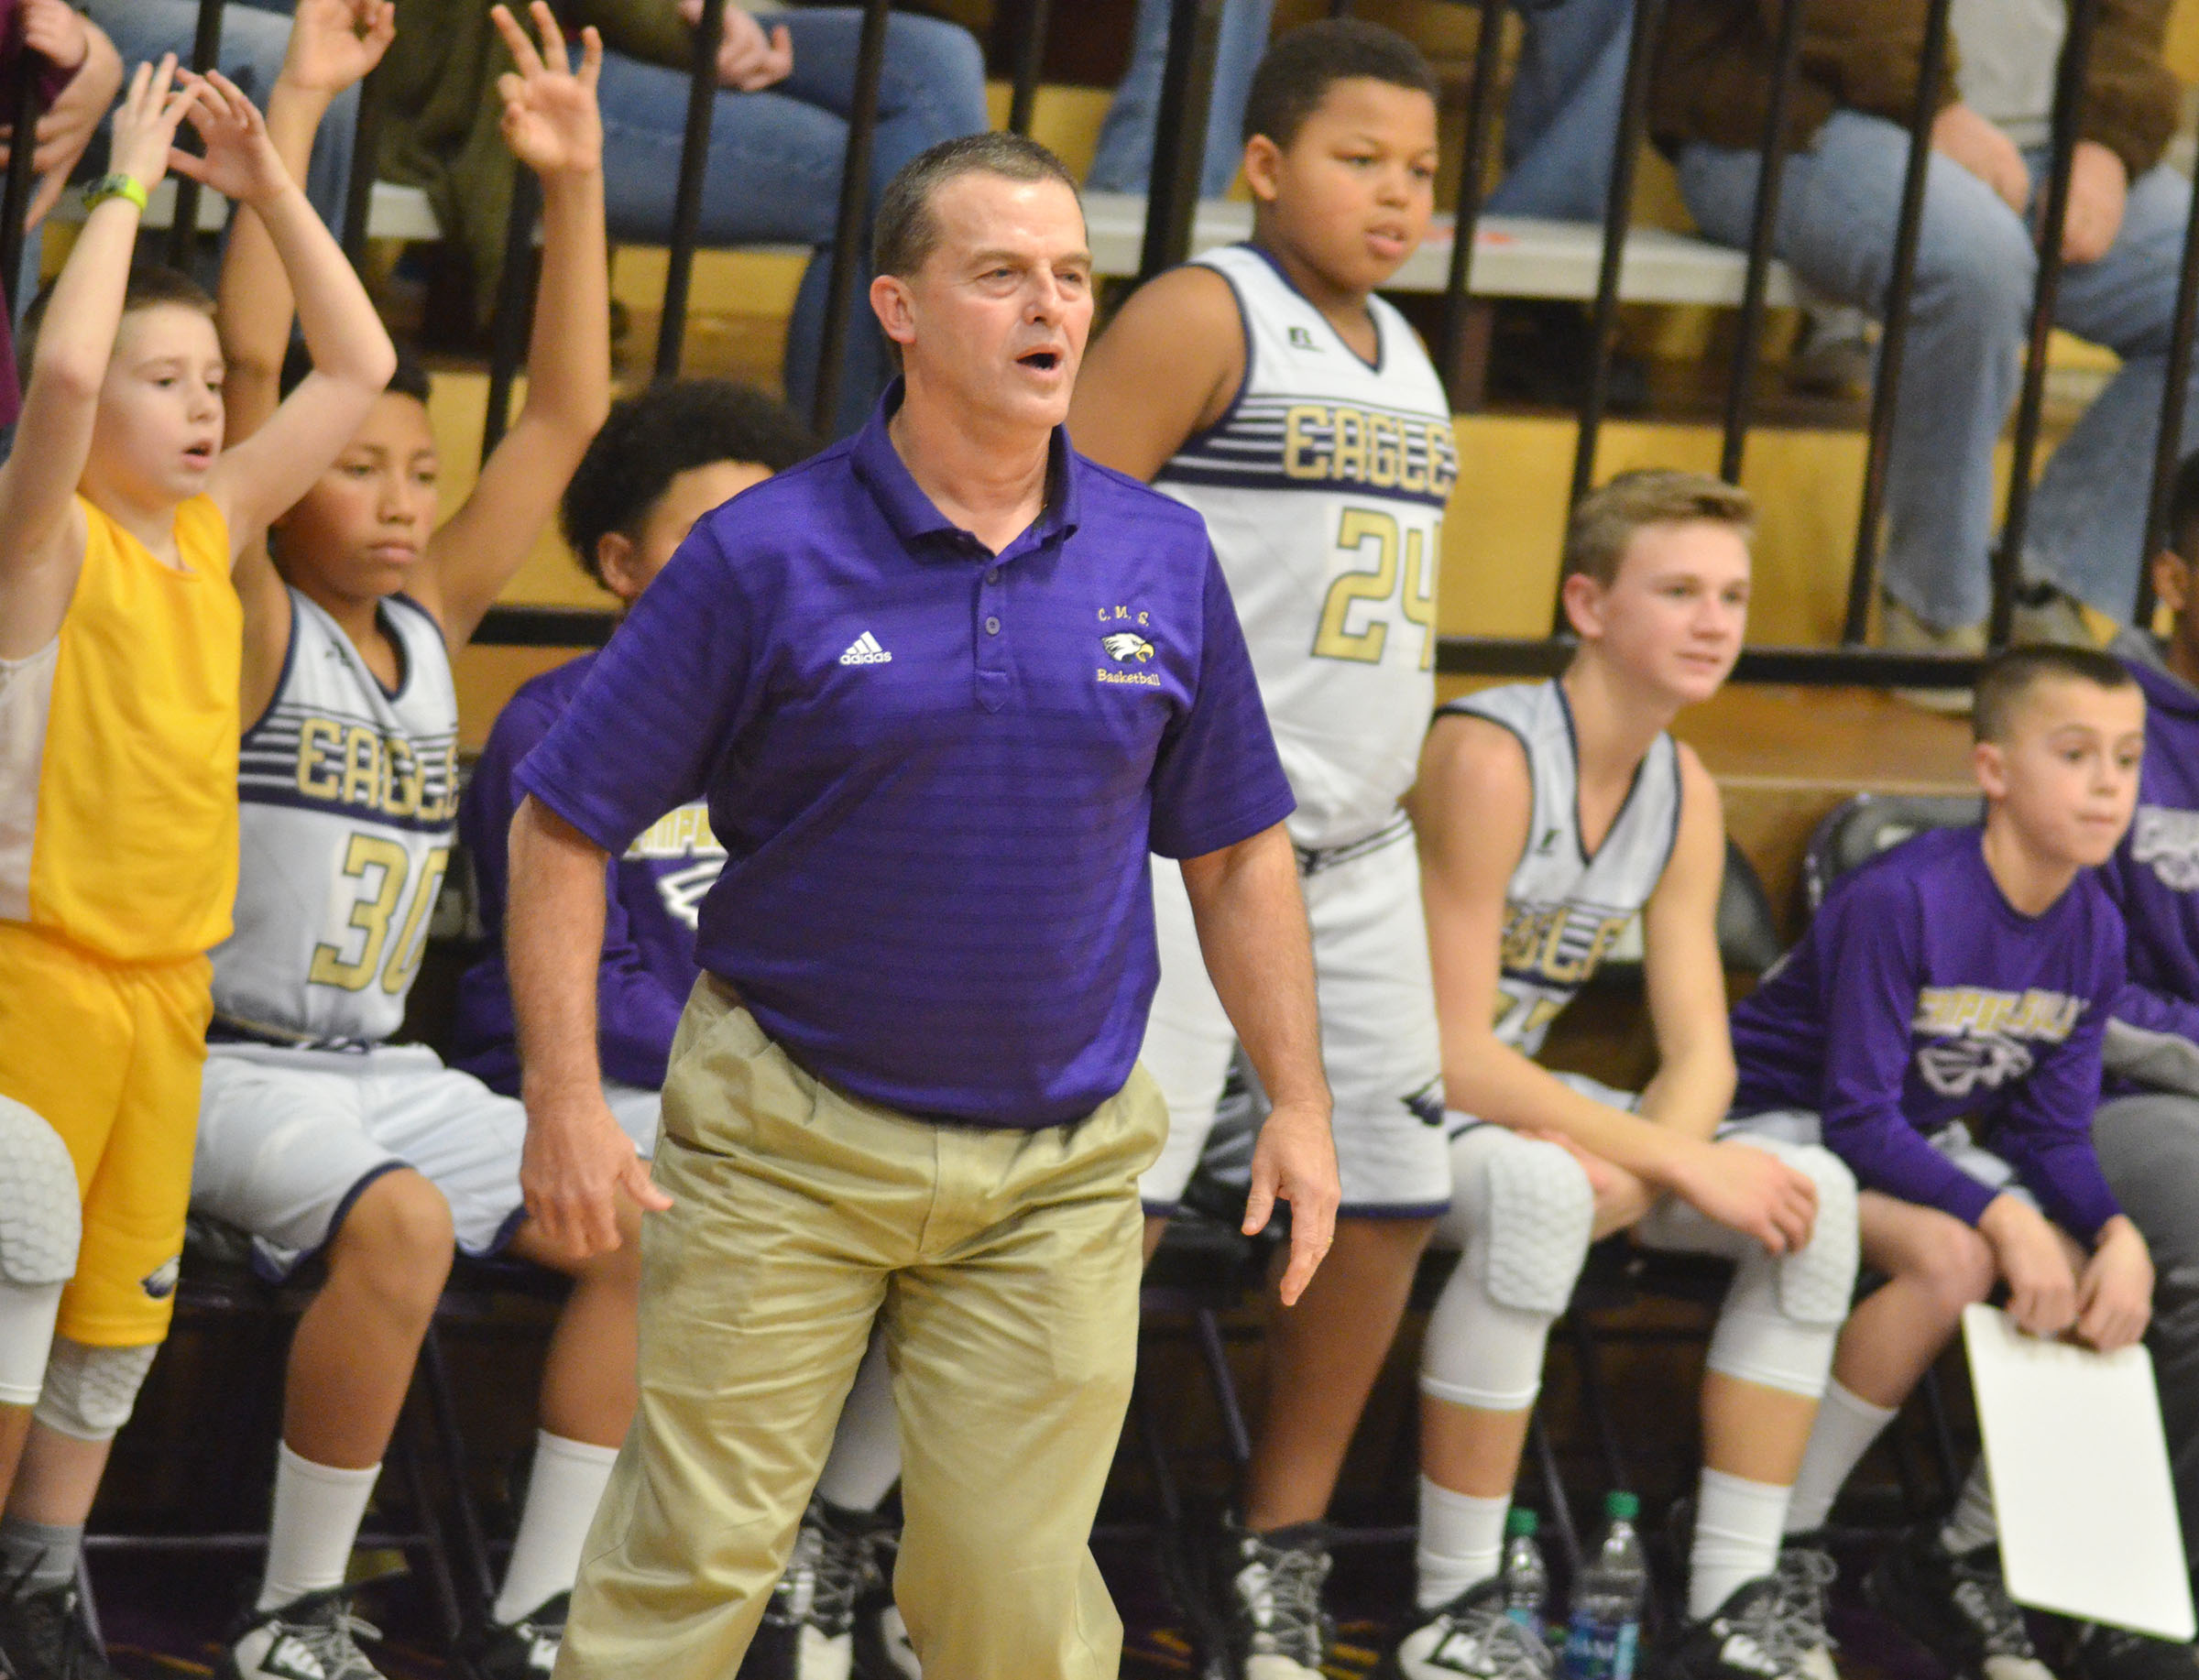 CMS boys' basketball coach Lynn Kearney watches as his players take the lead.